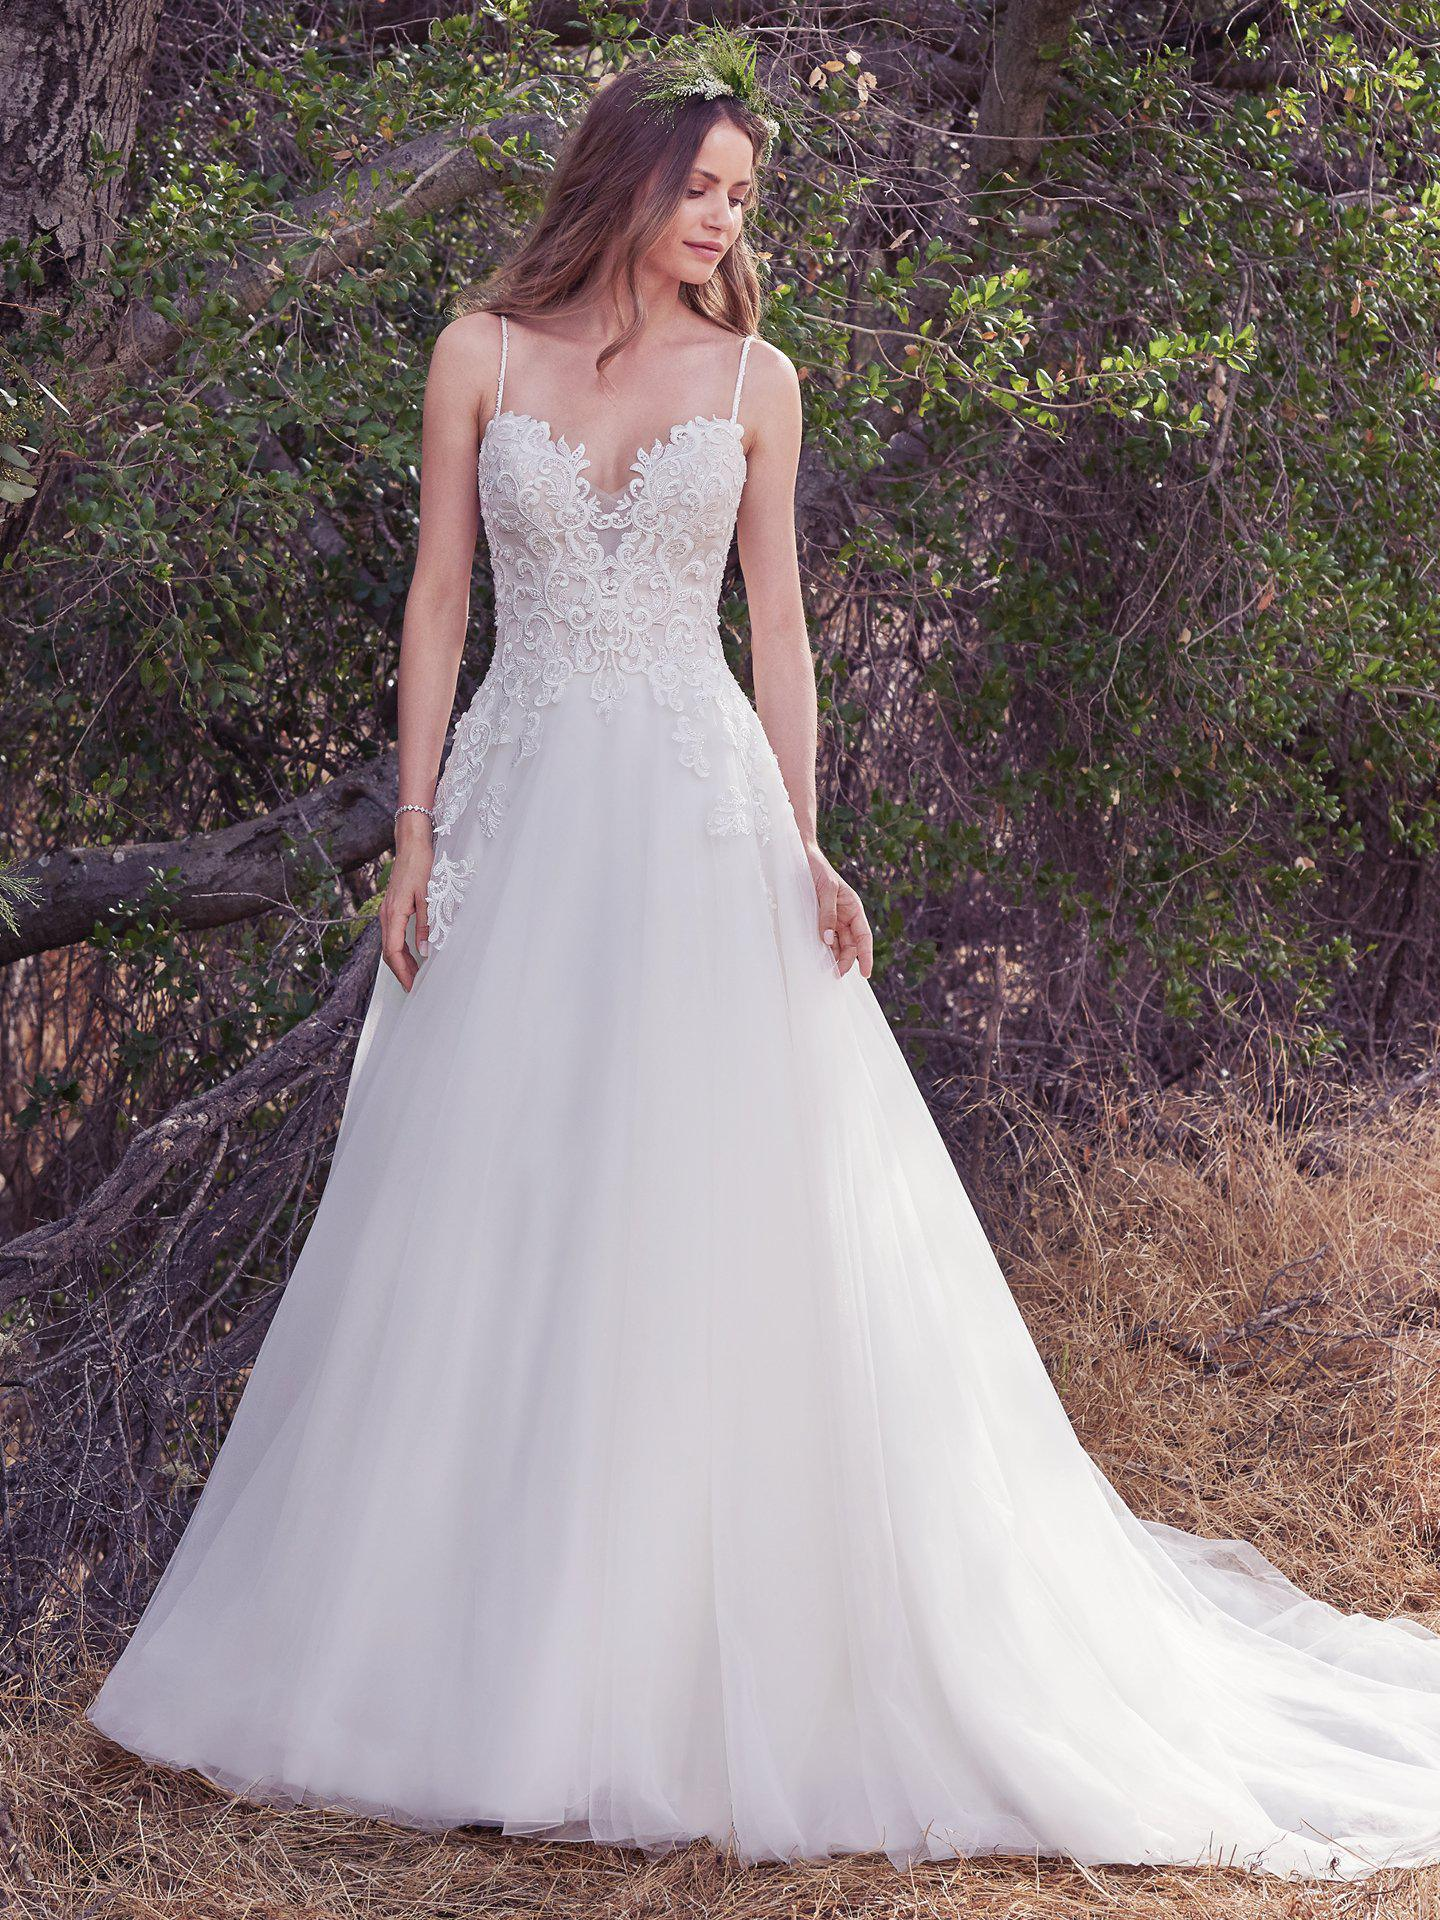 2018. Maggie Sottero - MOROCCO, Ivory:36